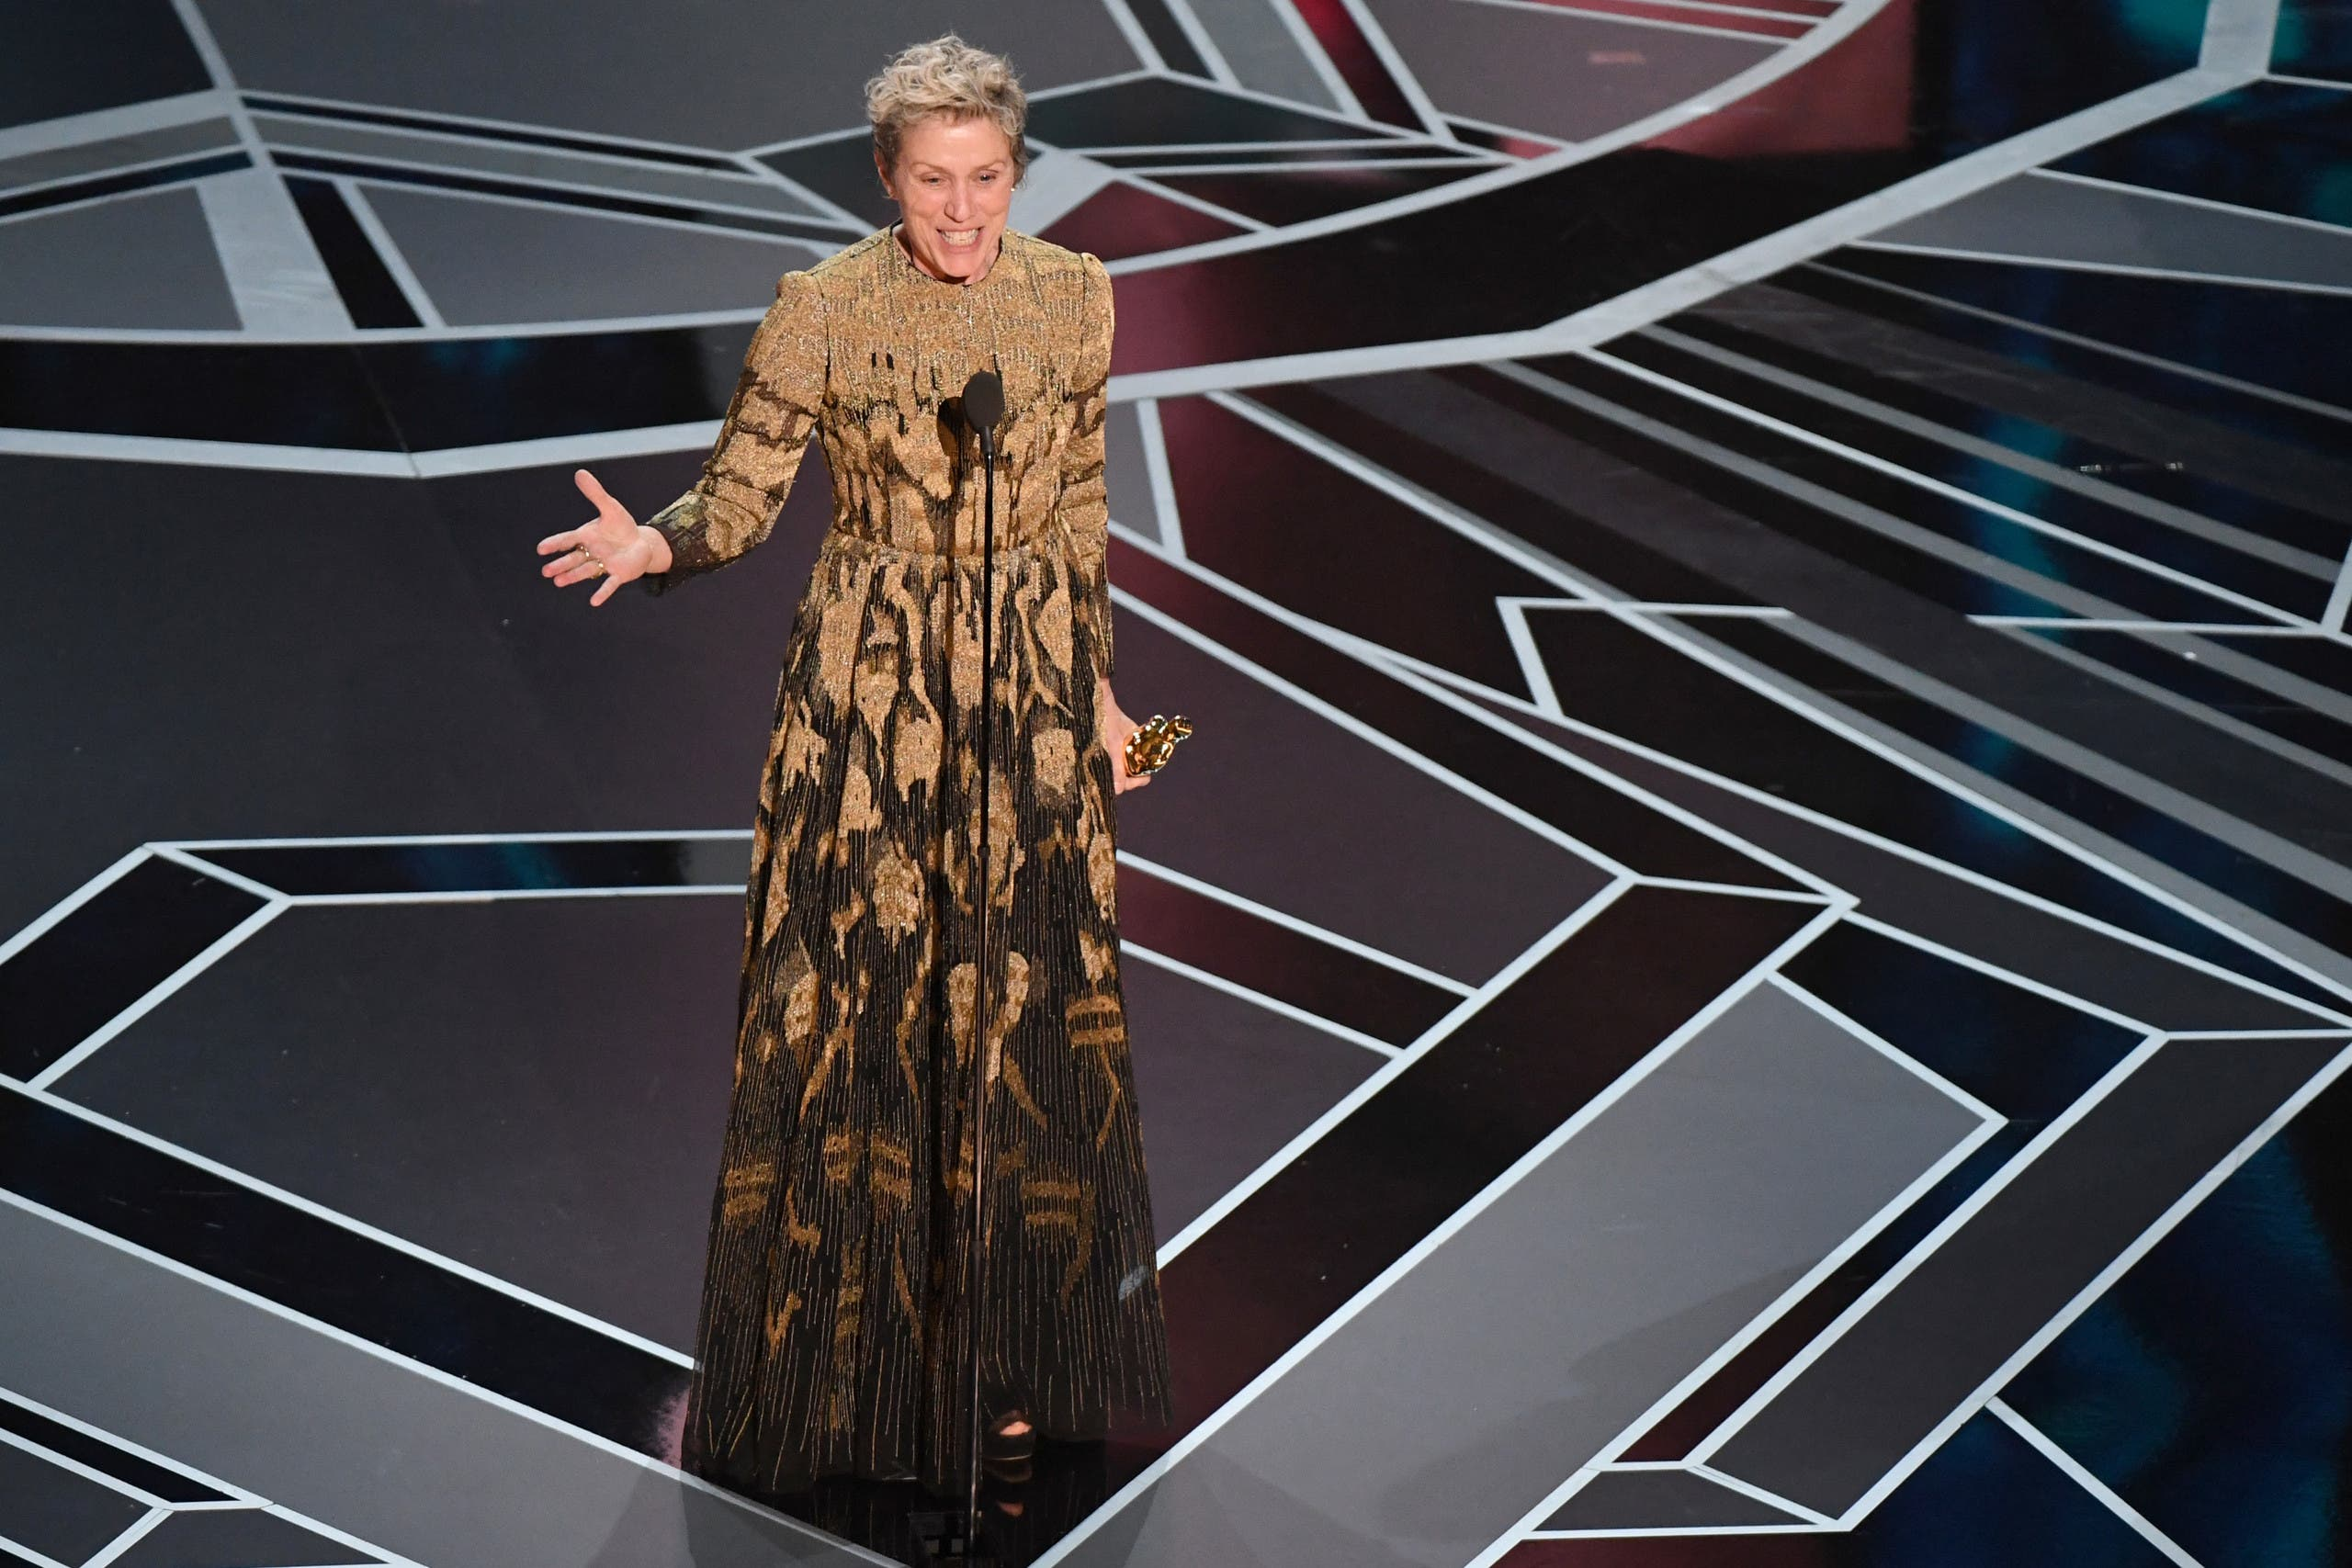 In this file photo taken on March 4, 2018 US actress Frances McDormand delivers a speech after she won the Oscar for Best Actress in Three Billboards outside Ebbing, Missouri during the 90th Annual Academy Awards show in Hollywood, California. Frances McDormand has long been an Academy favorite, and she anchors this year's frontrunner Nomadland with a characteristically unglamorous portrayal of a grieving widow living in an old van. (File photo: AFP)